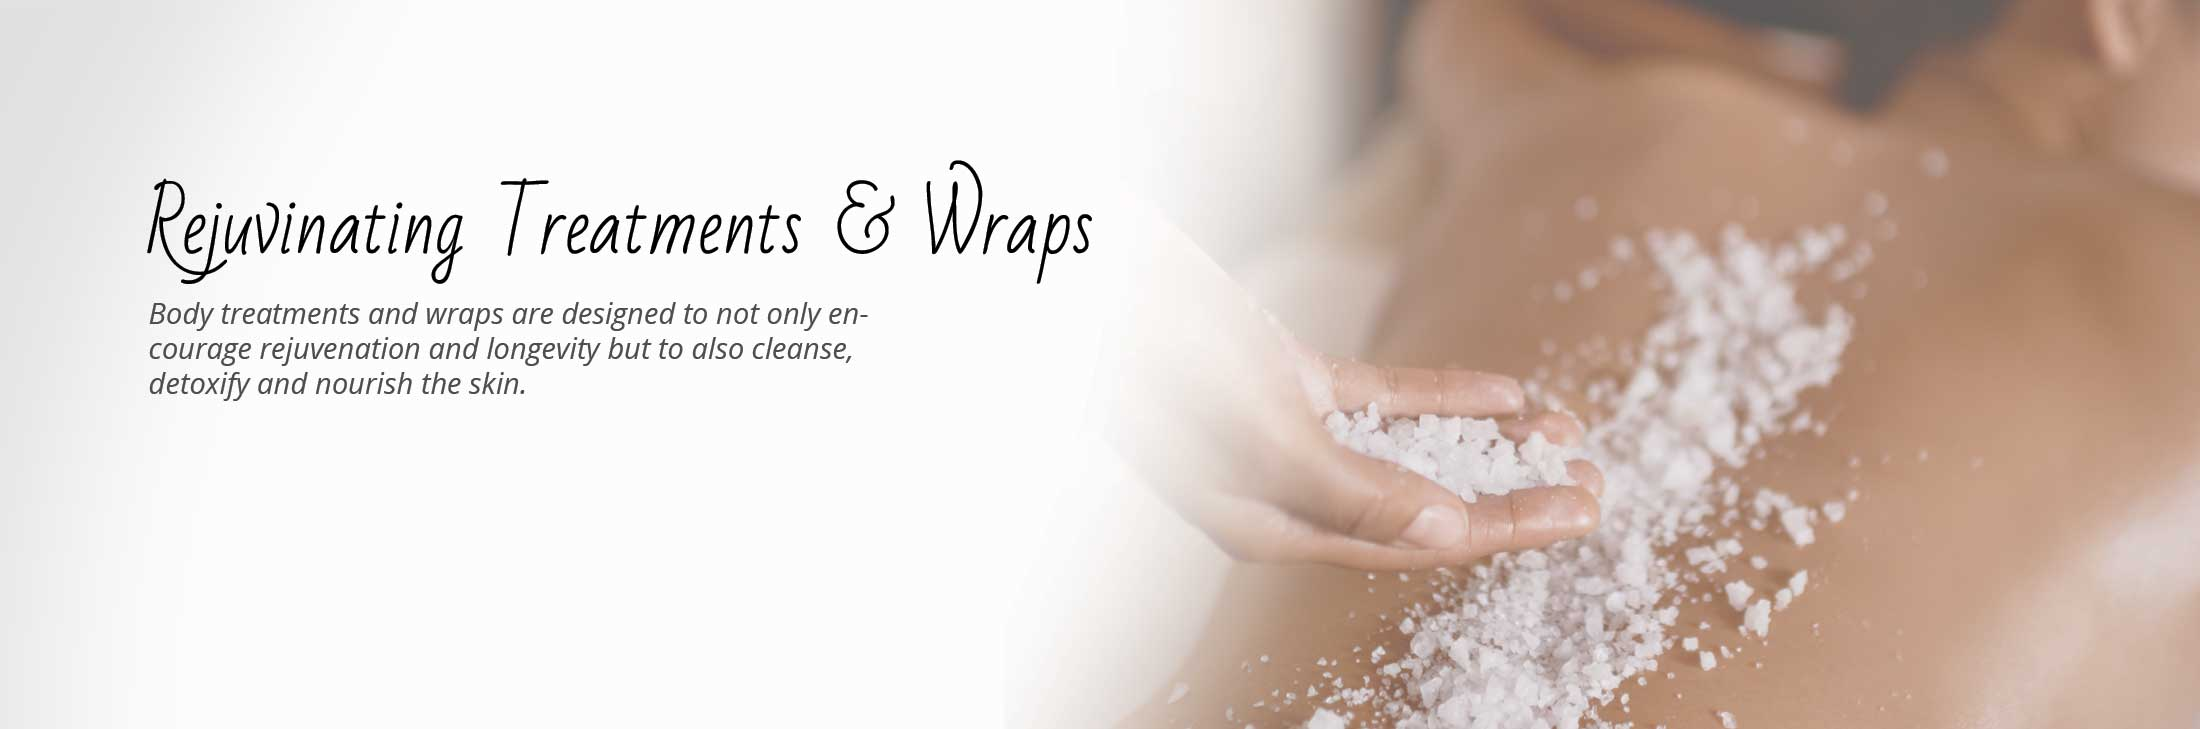 body treatments and wraps